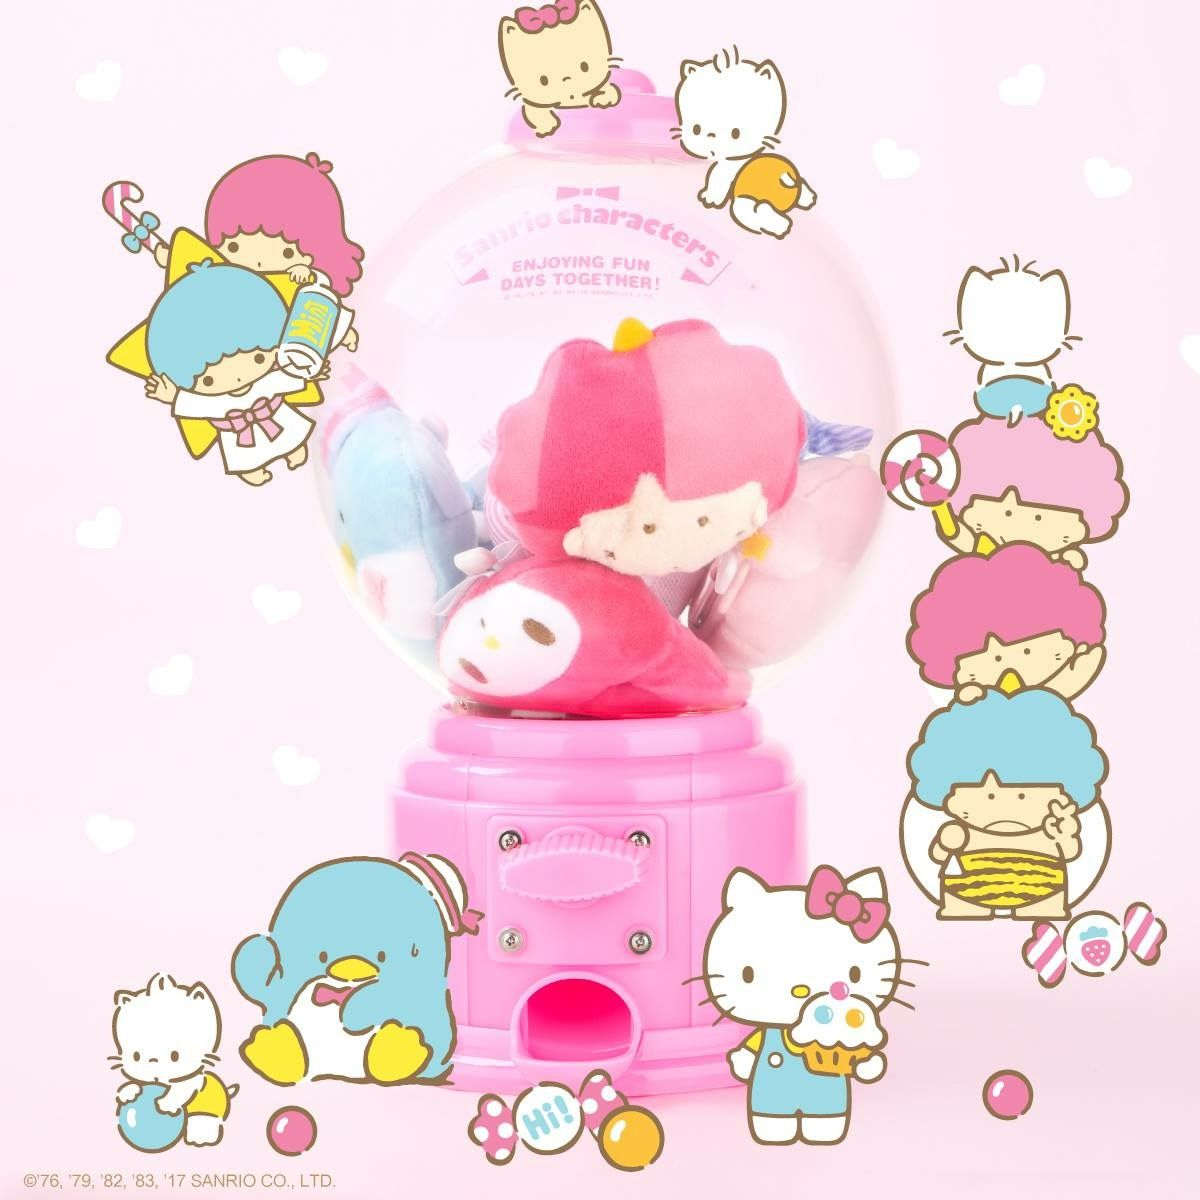 Sanrio gumball machine (^O^)